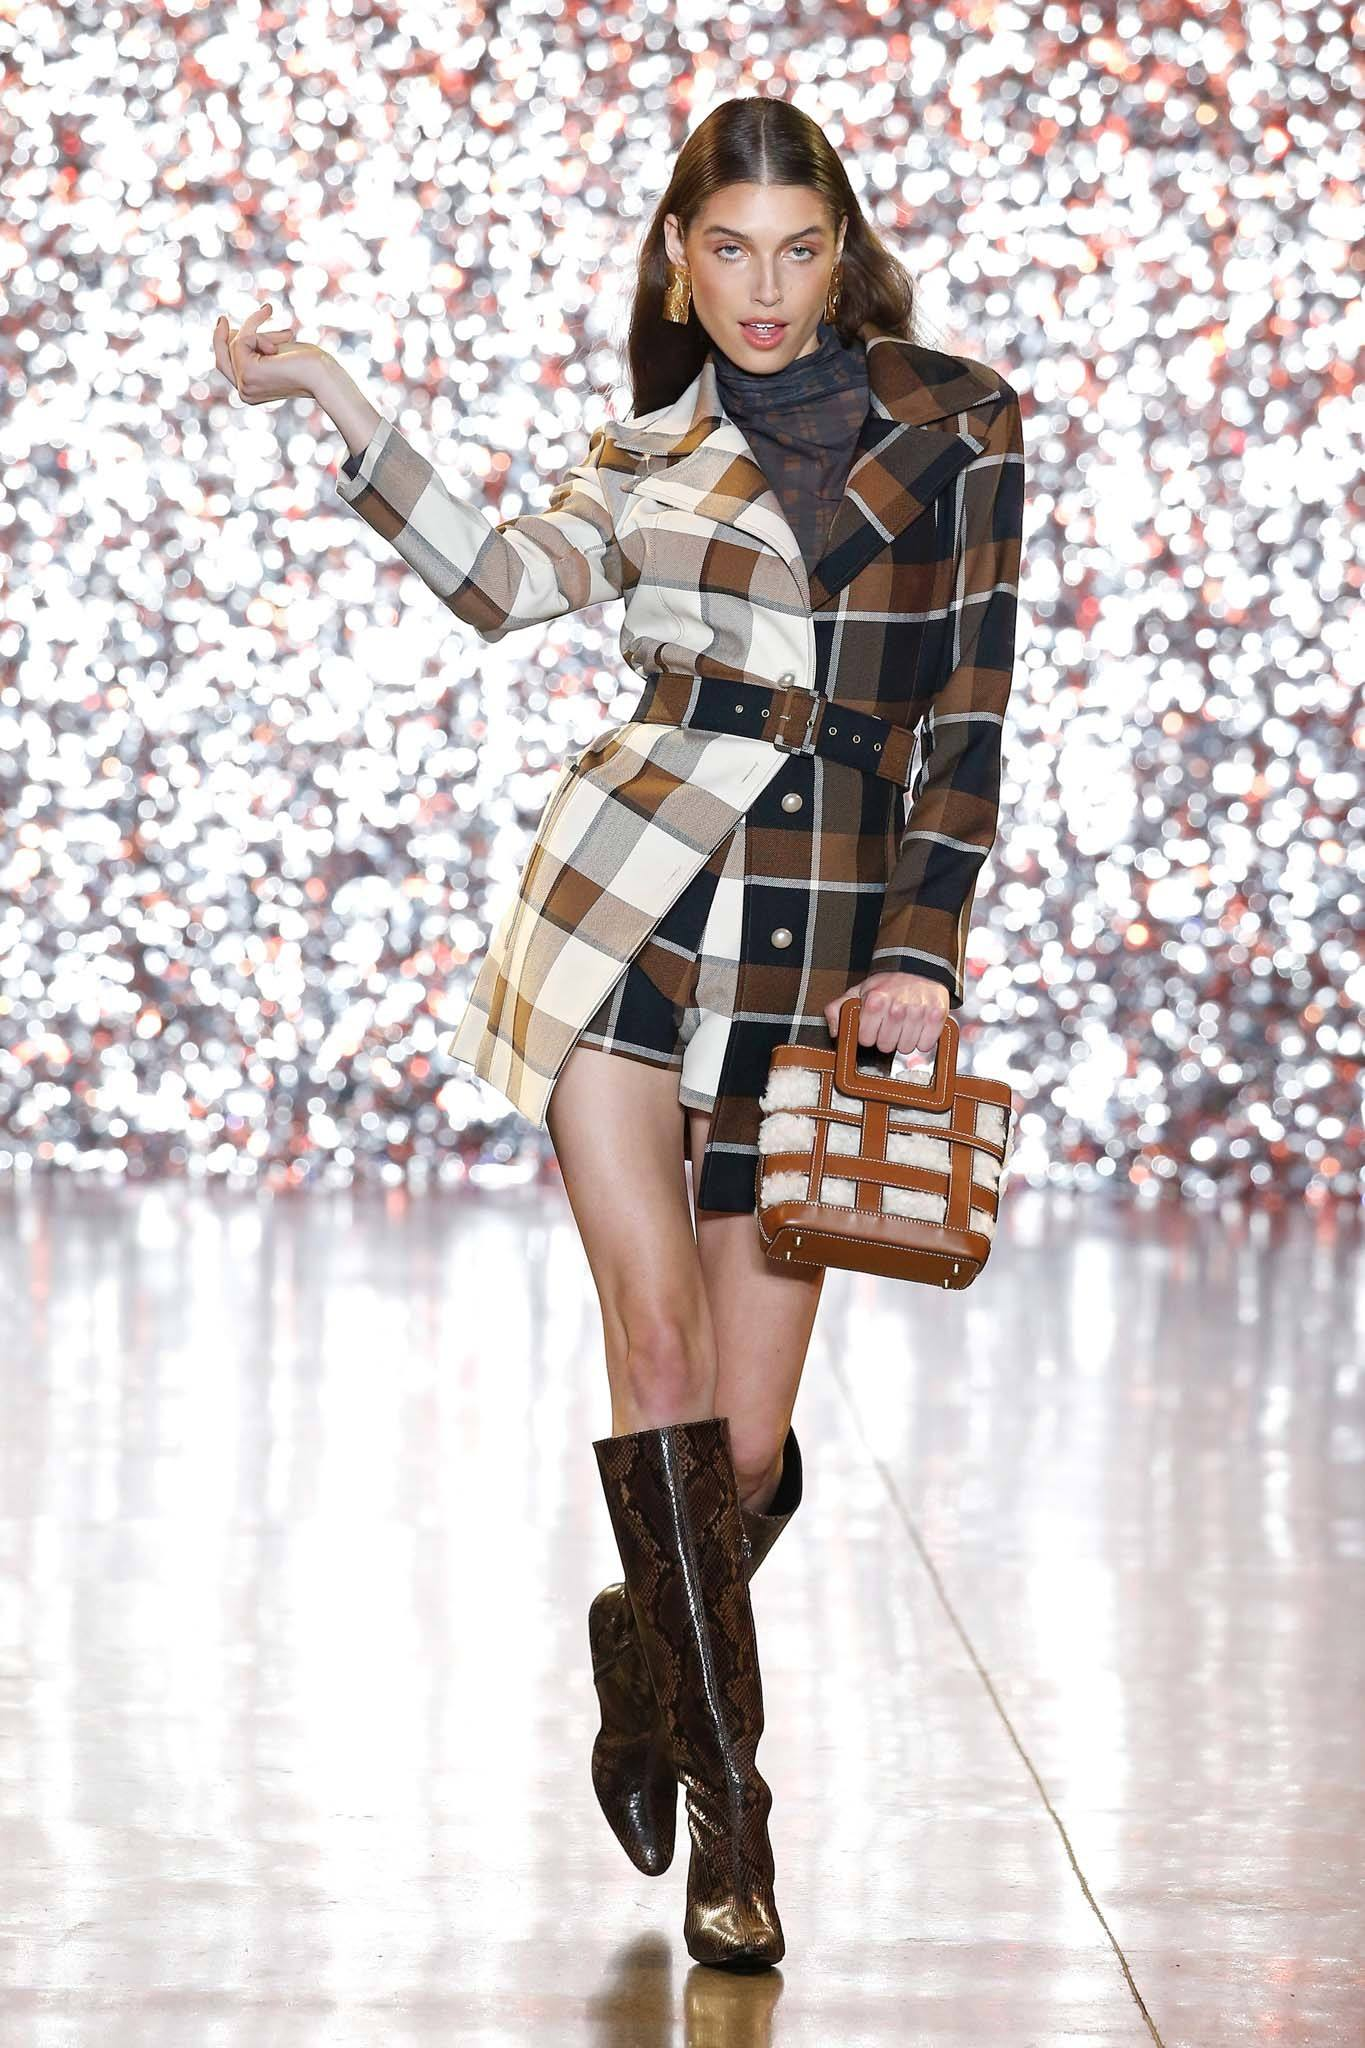 NYFW Catwalk Trends: Model on Staud FW19 runway with long straight brown hair tucked behind her ears with a wet look finish wearing a check trench coat.